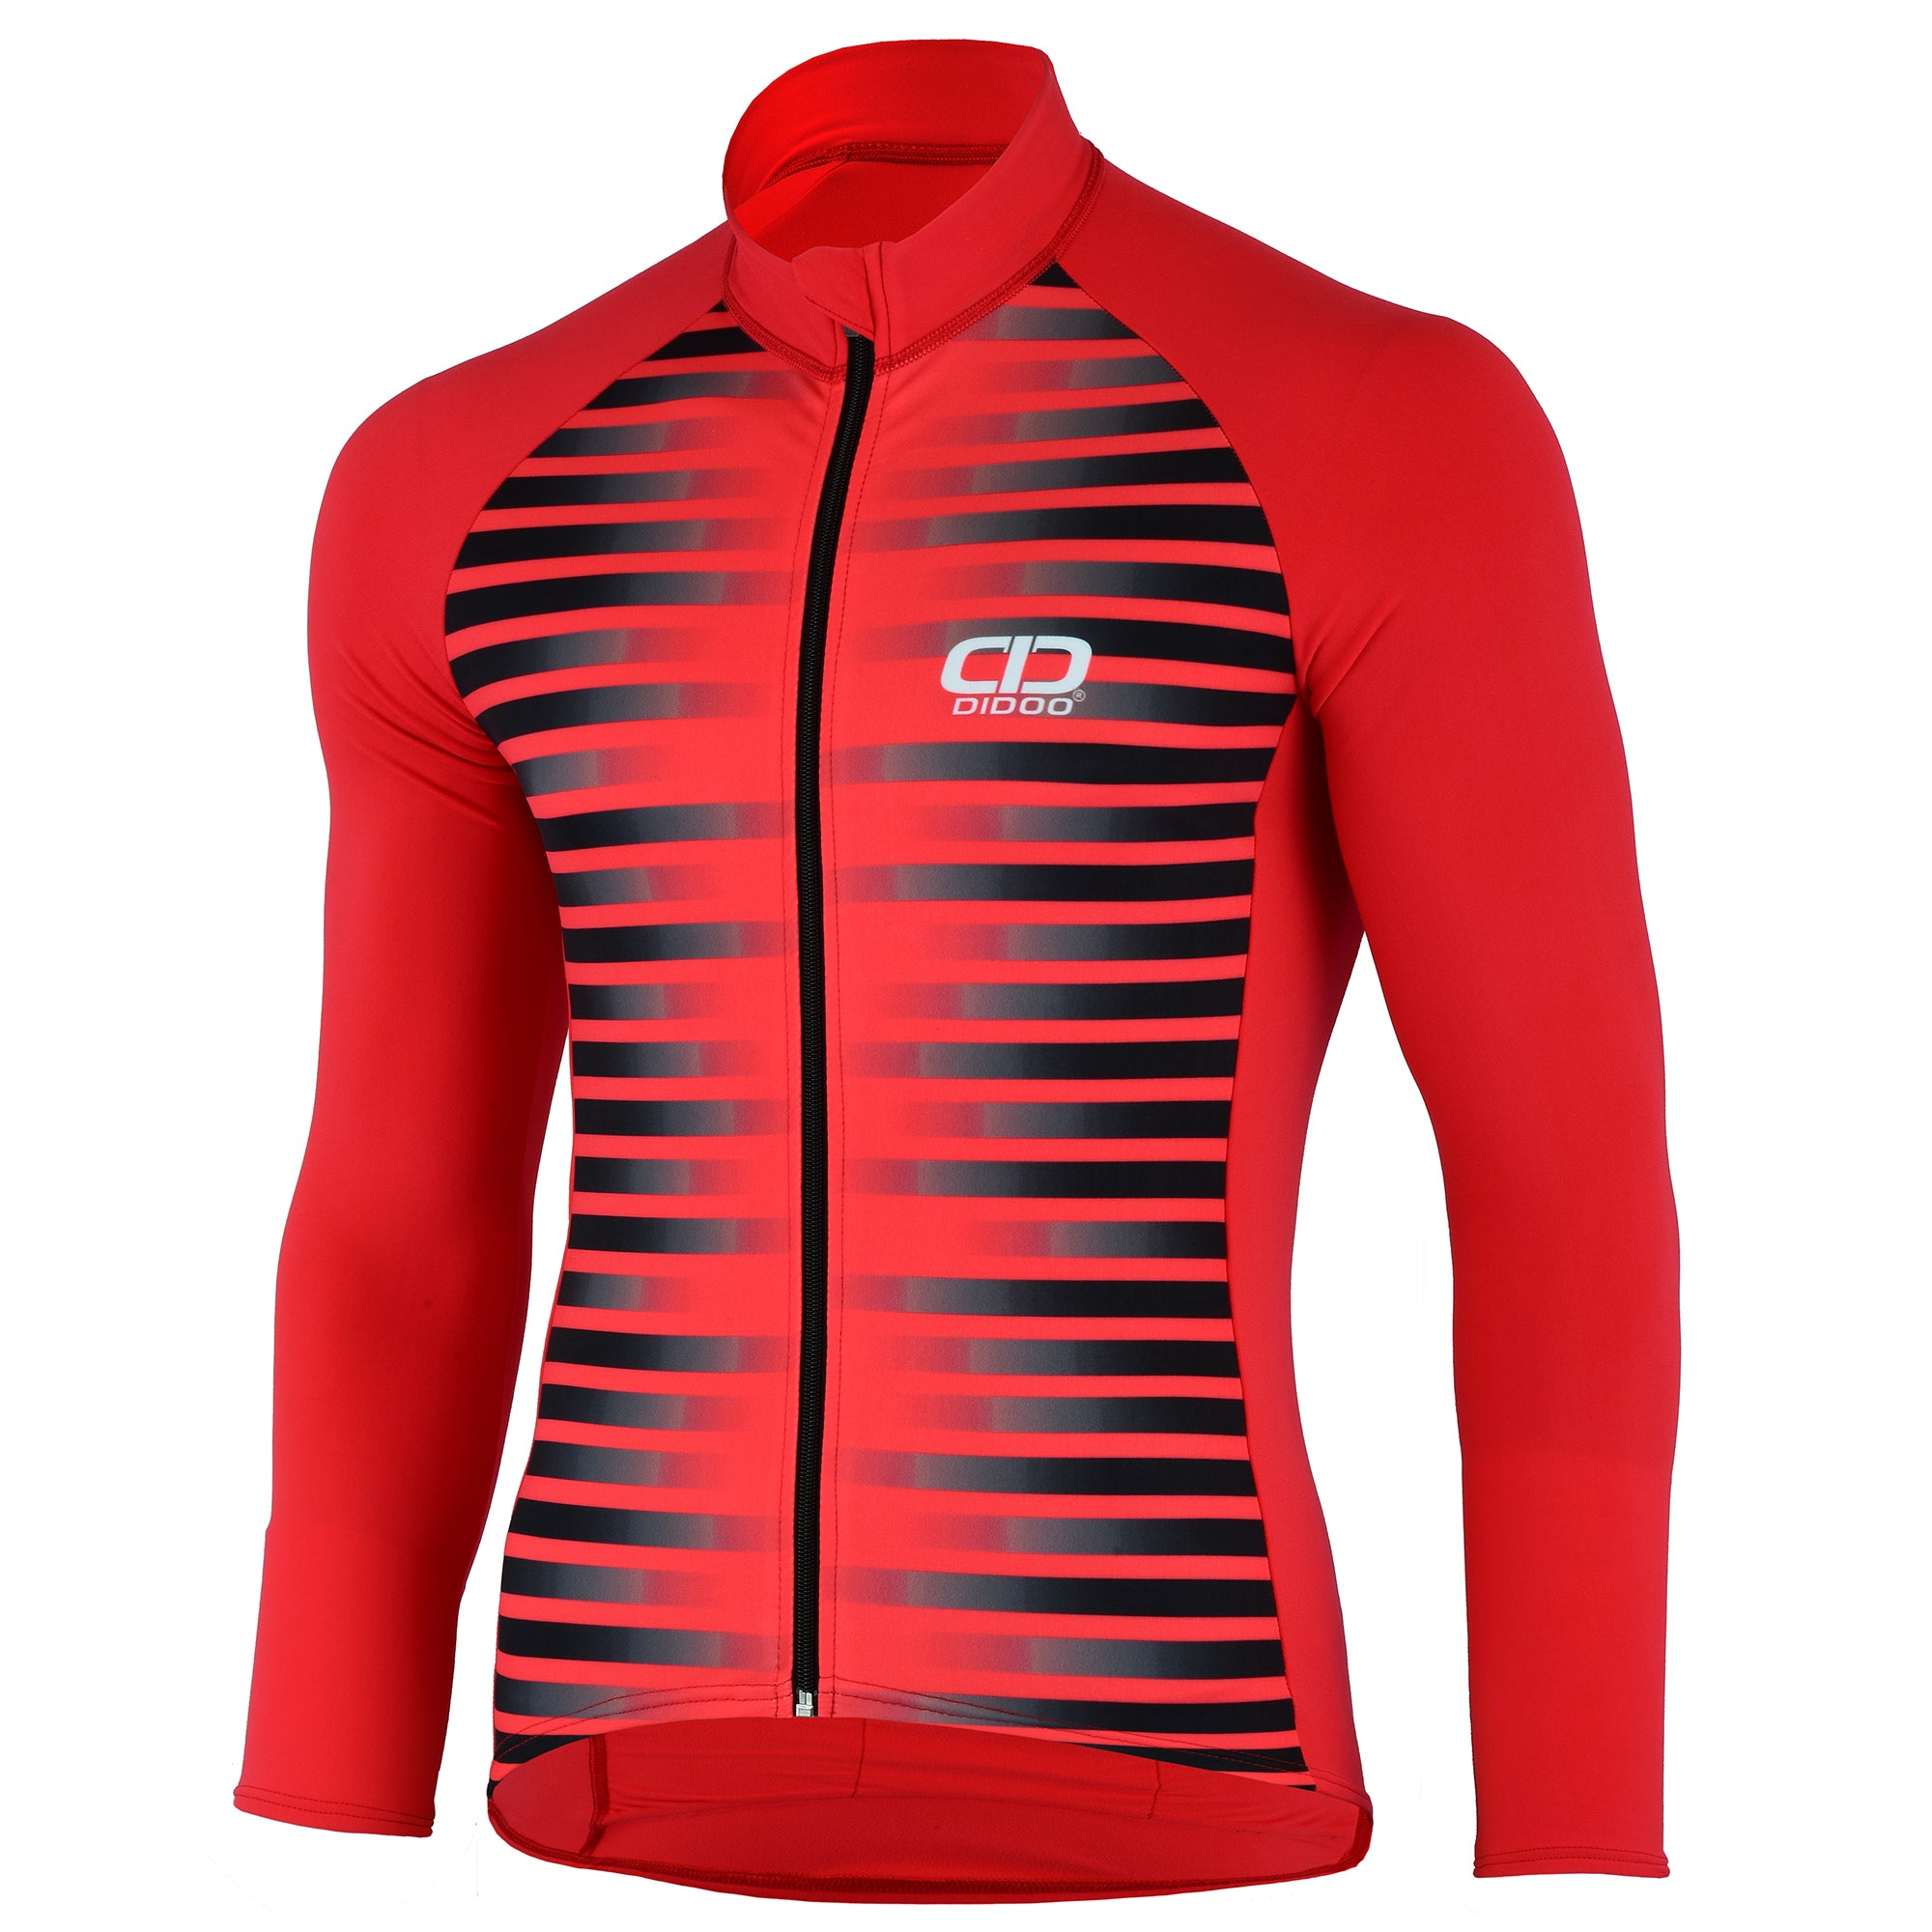 DiDOO Men's Pro long sleeve winter cycling jersey